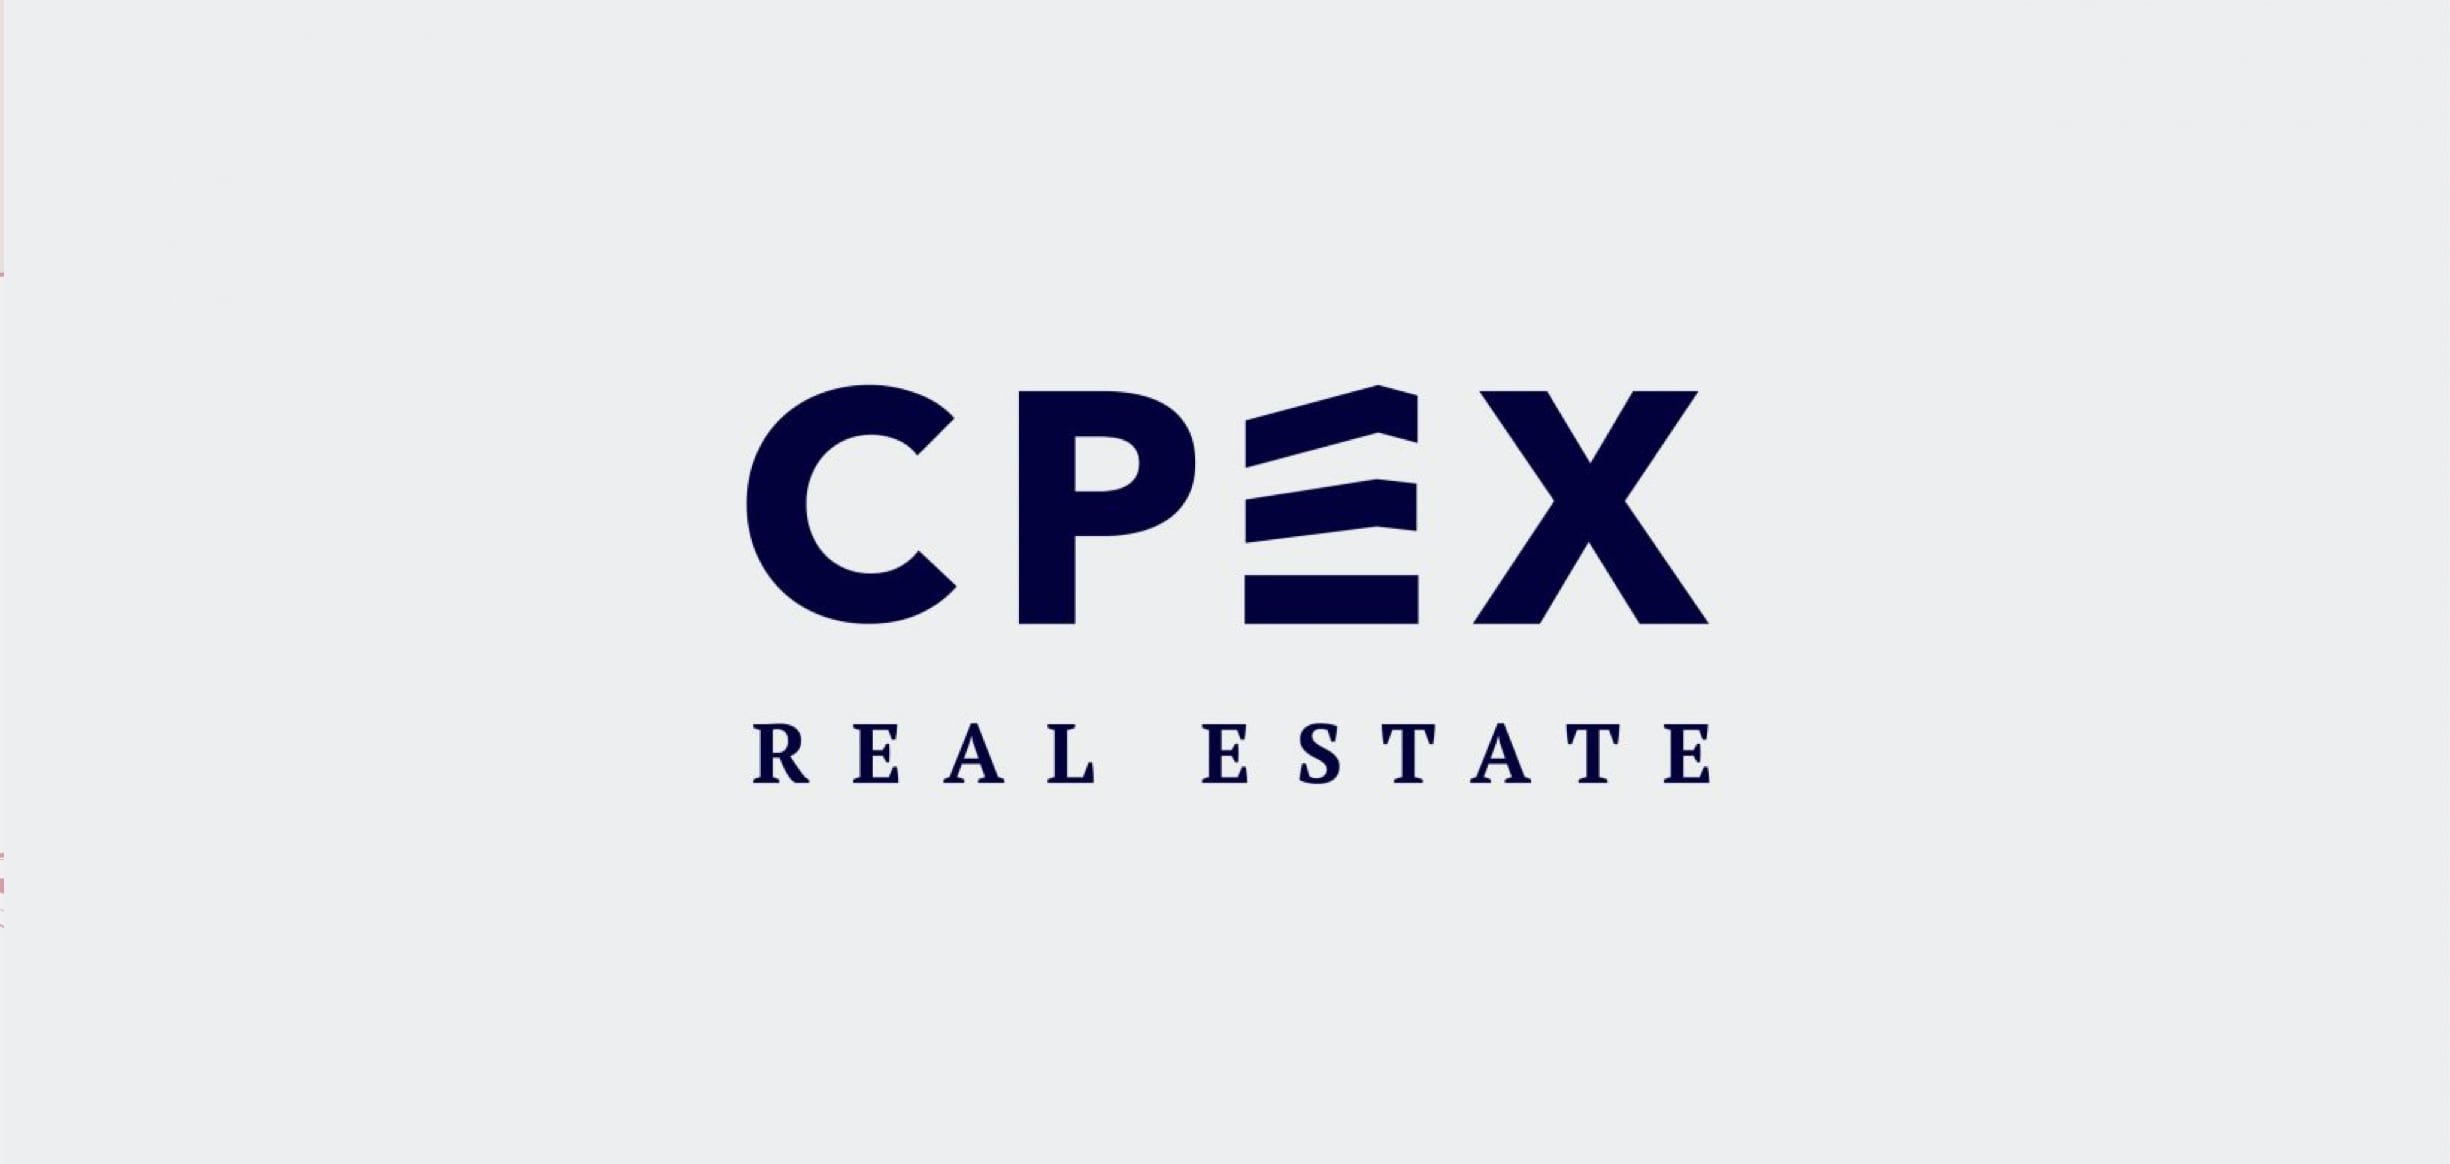 Before & After: CPEX Case Study